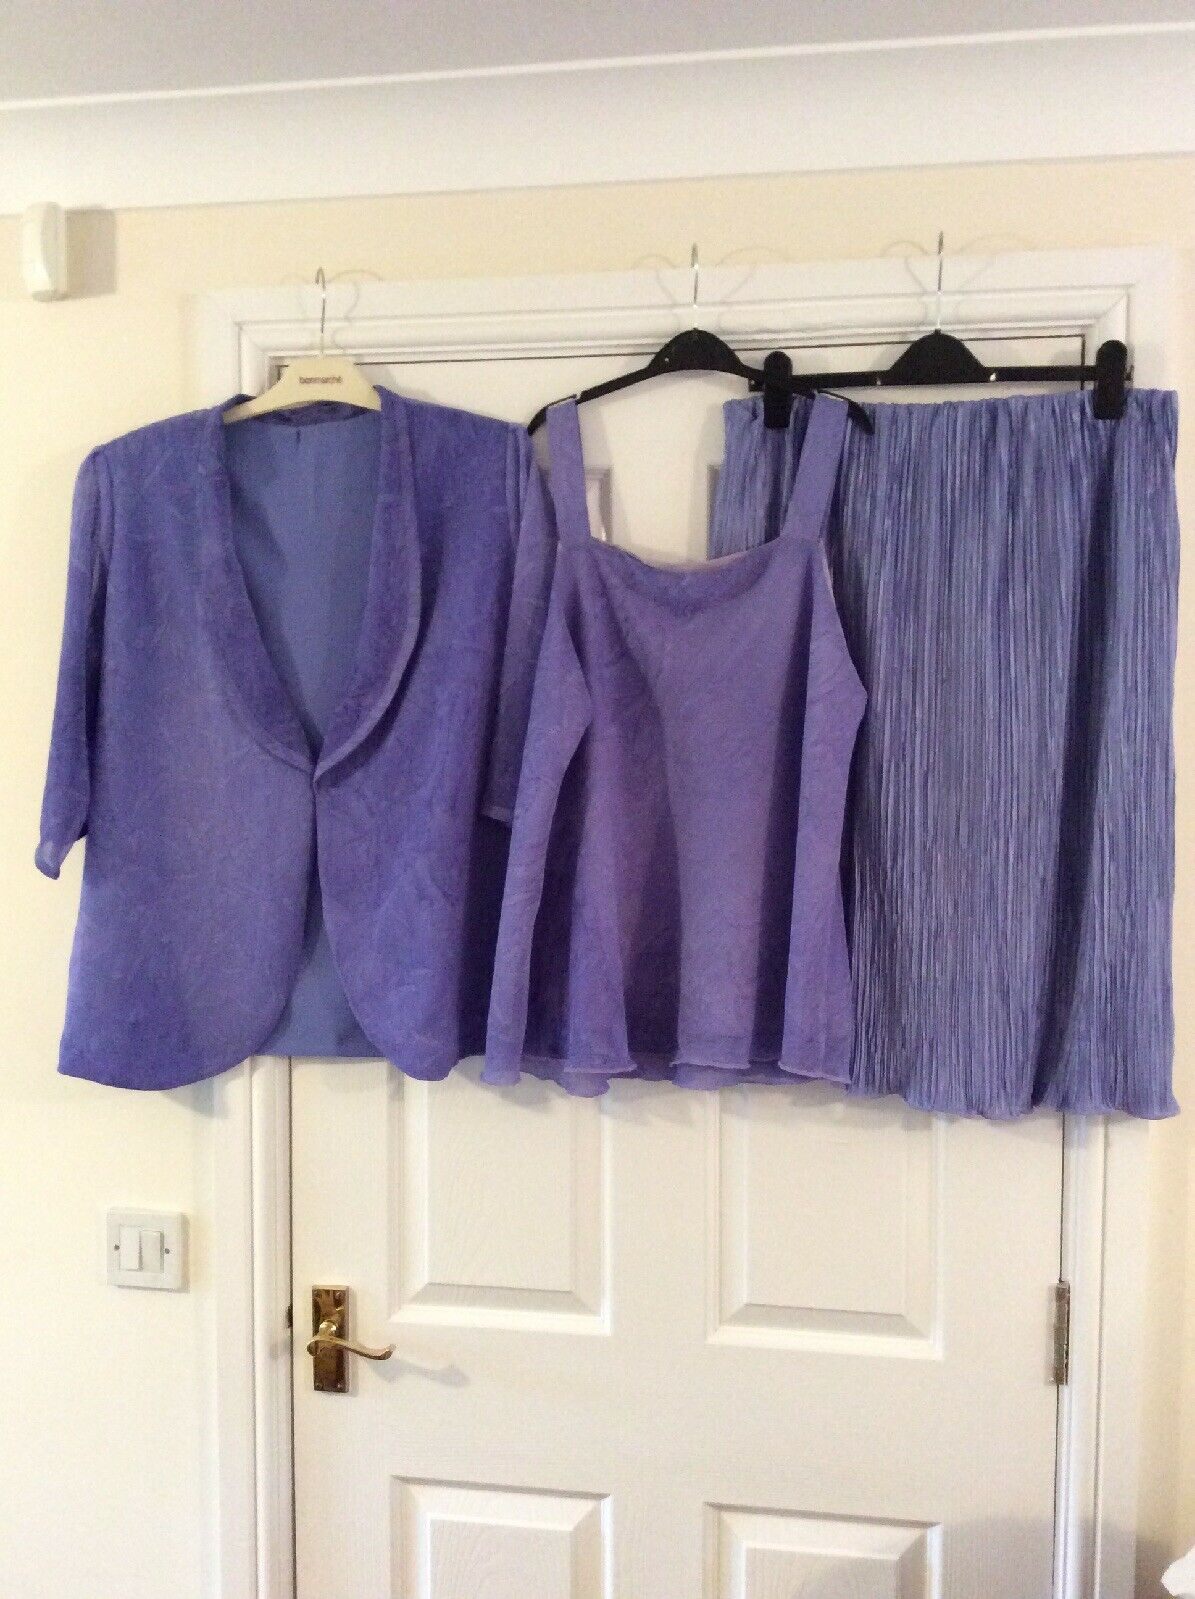 Lilac Wedding Outfit Mother Of The Bride (handmade)